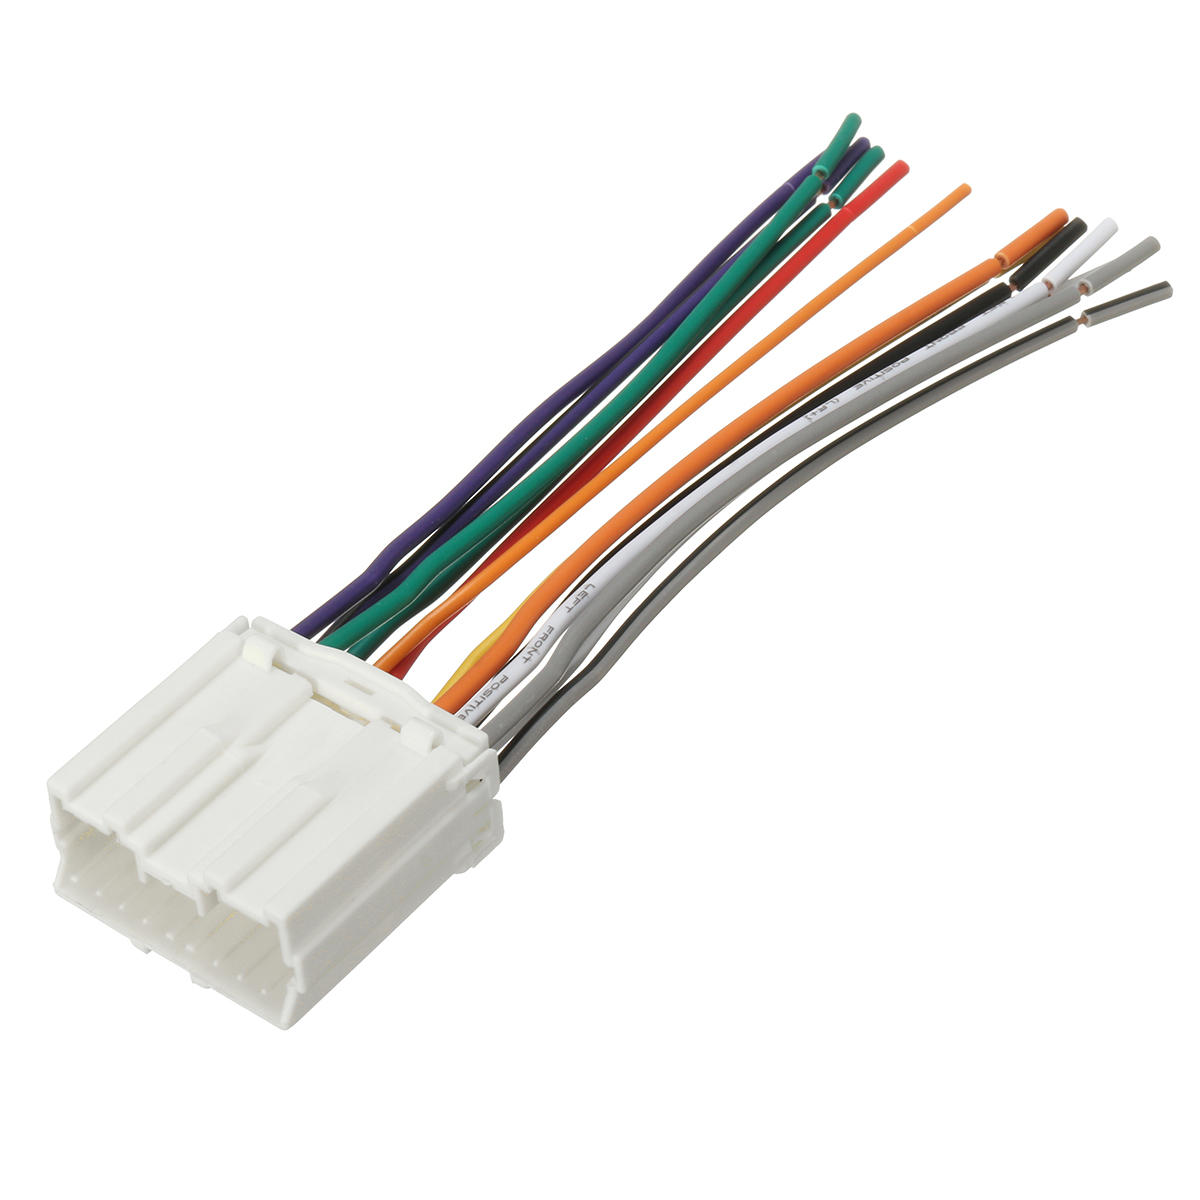 hight resolution of car stereo cd player wiring harness radio wire plug for mitsubishi 13pins sale banggood com sold out